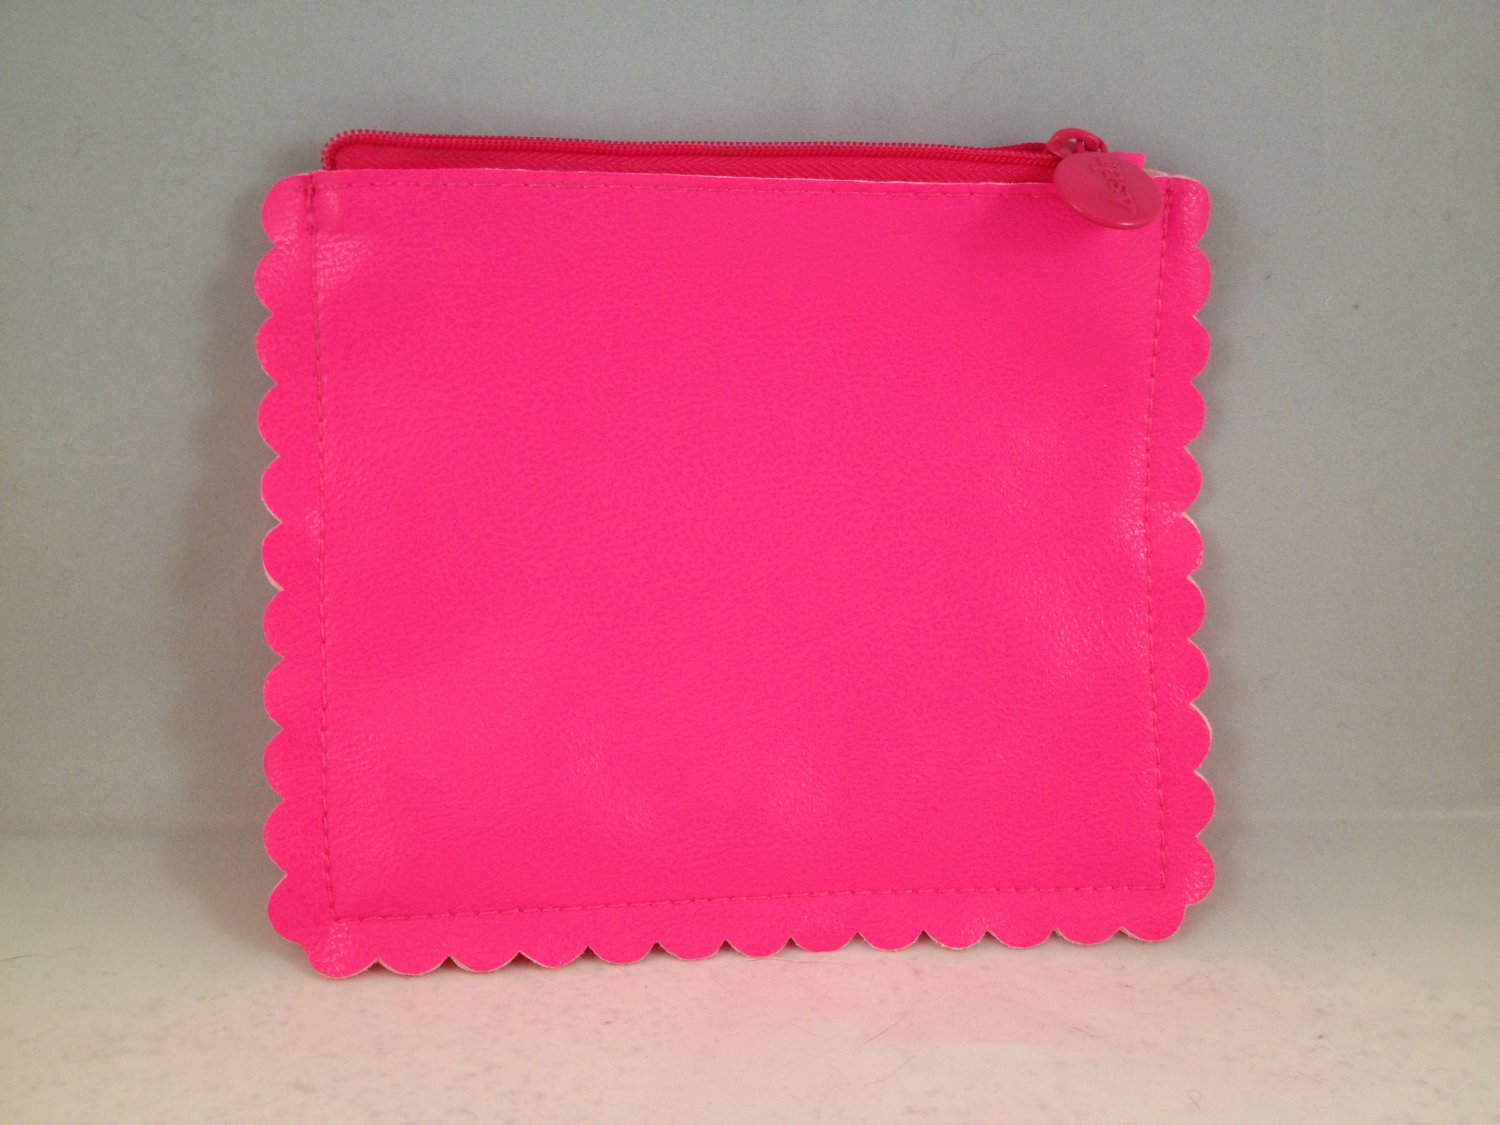 Ipsy MyGlam Glam Bag Sensationally Sunkissed July 2014 Cosmetic clutch Hot Pink Faux Leather